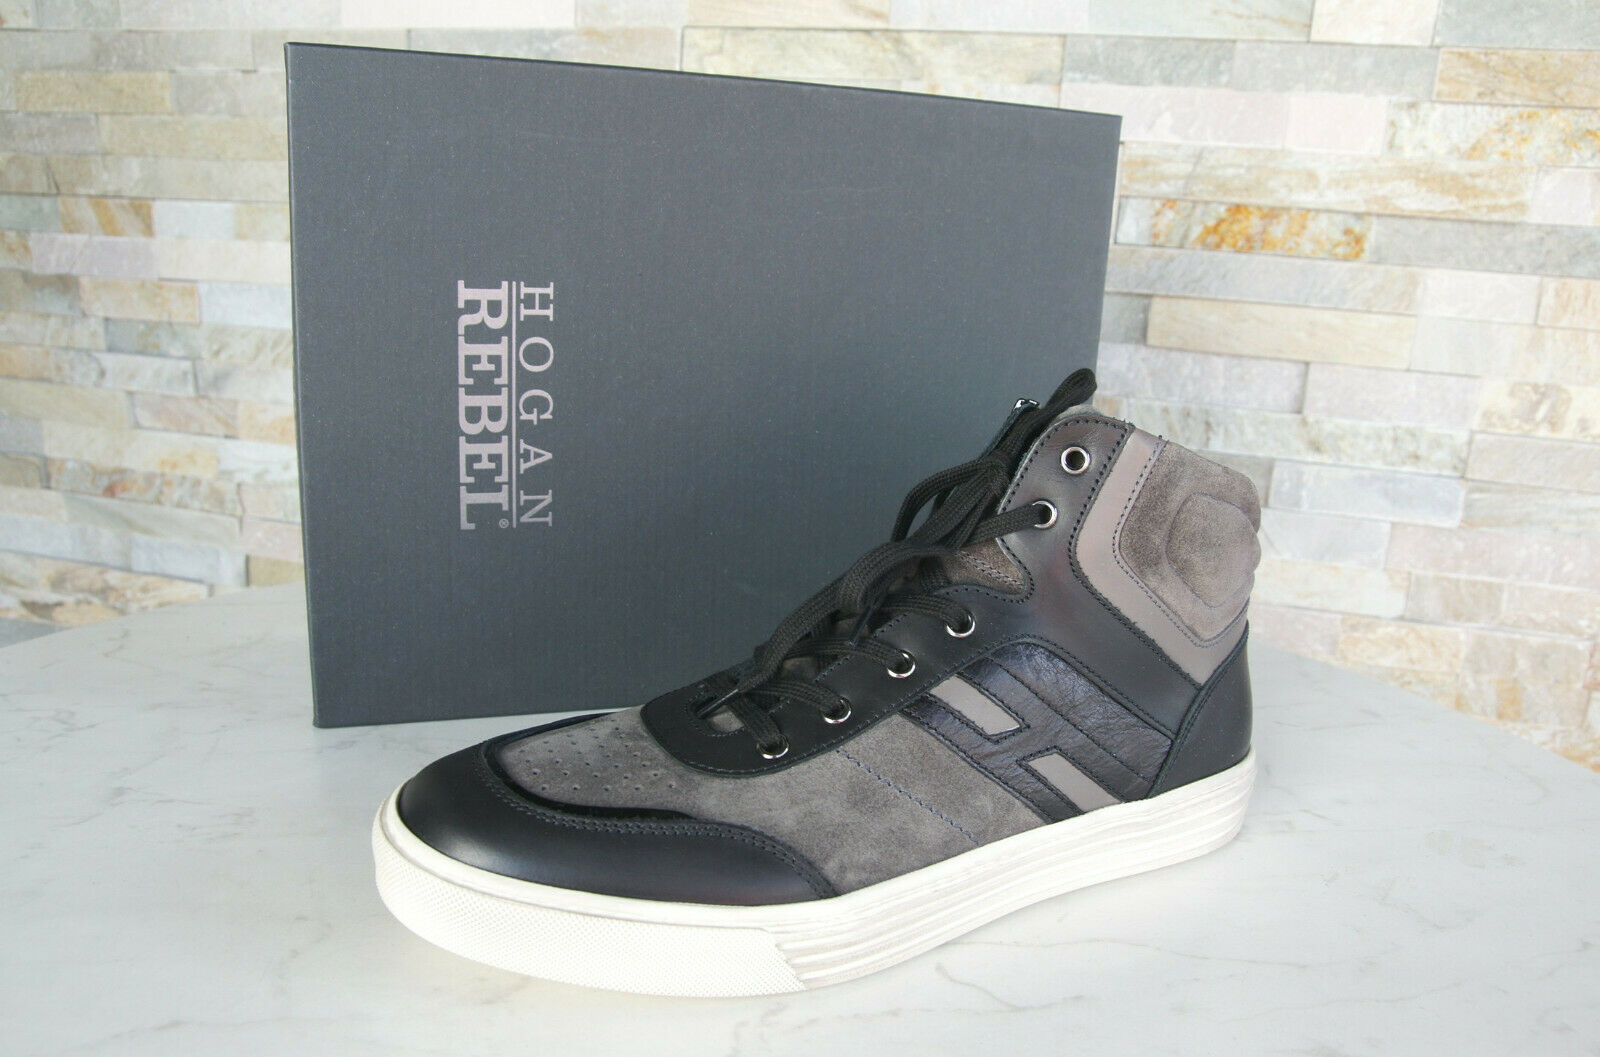 Hogan 9,5 44 High Top Sneakers Laces New shoes Grey Black Formerly Rrp